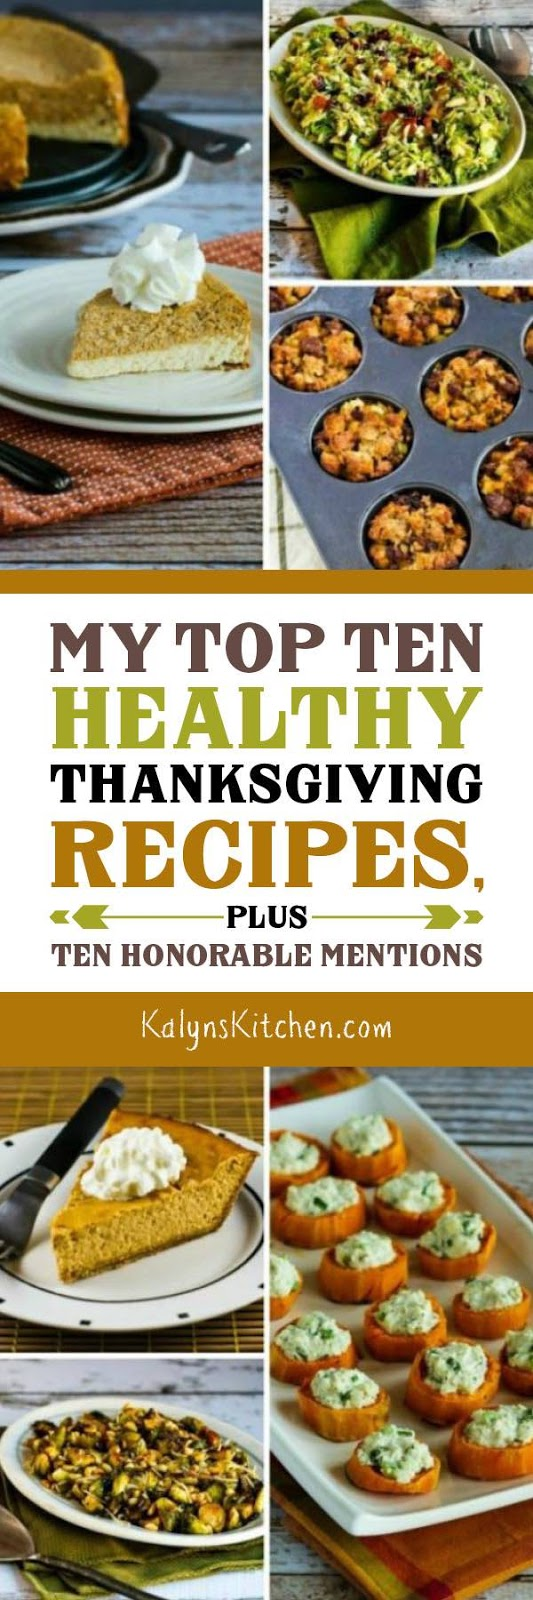 Top Ten Healthy Thanksgiving Recipes, plus Ten Honorable Mentions found on KalynsKitchen.com